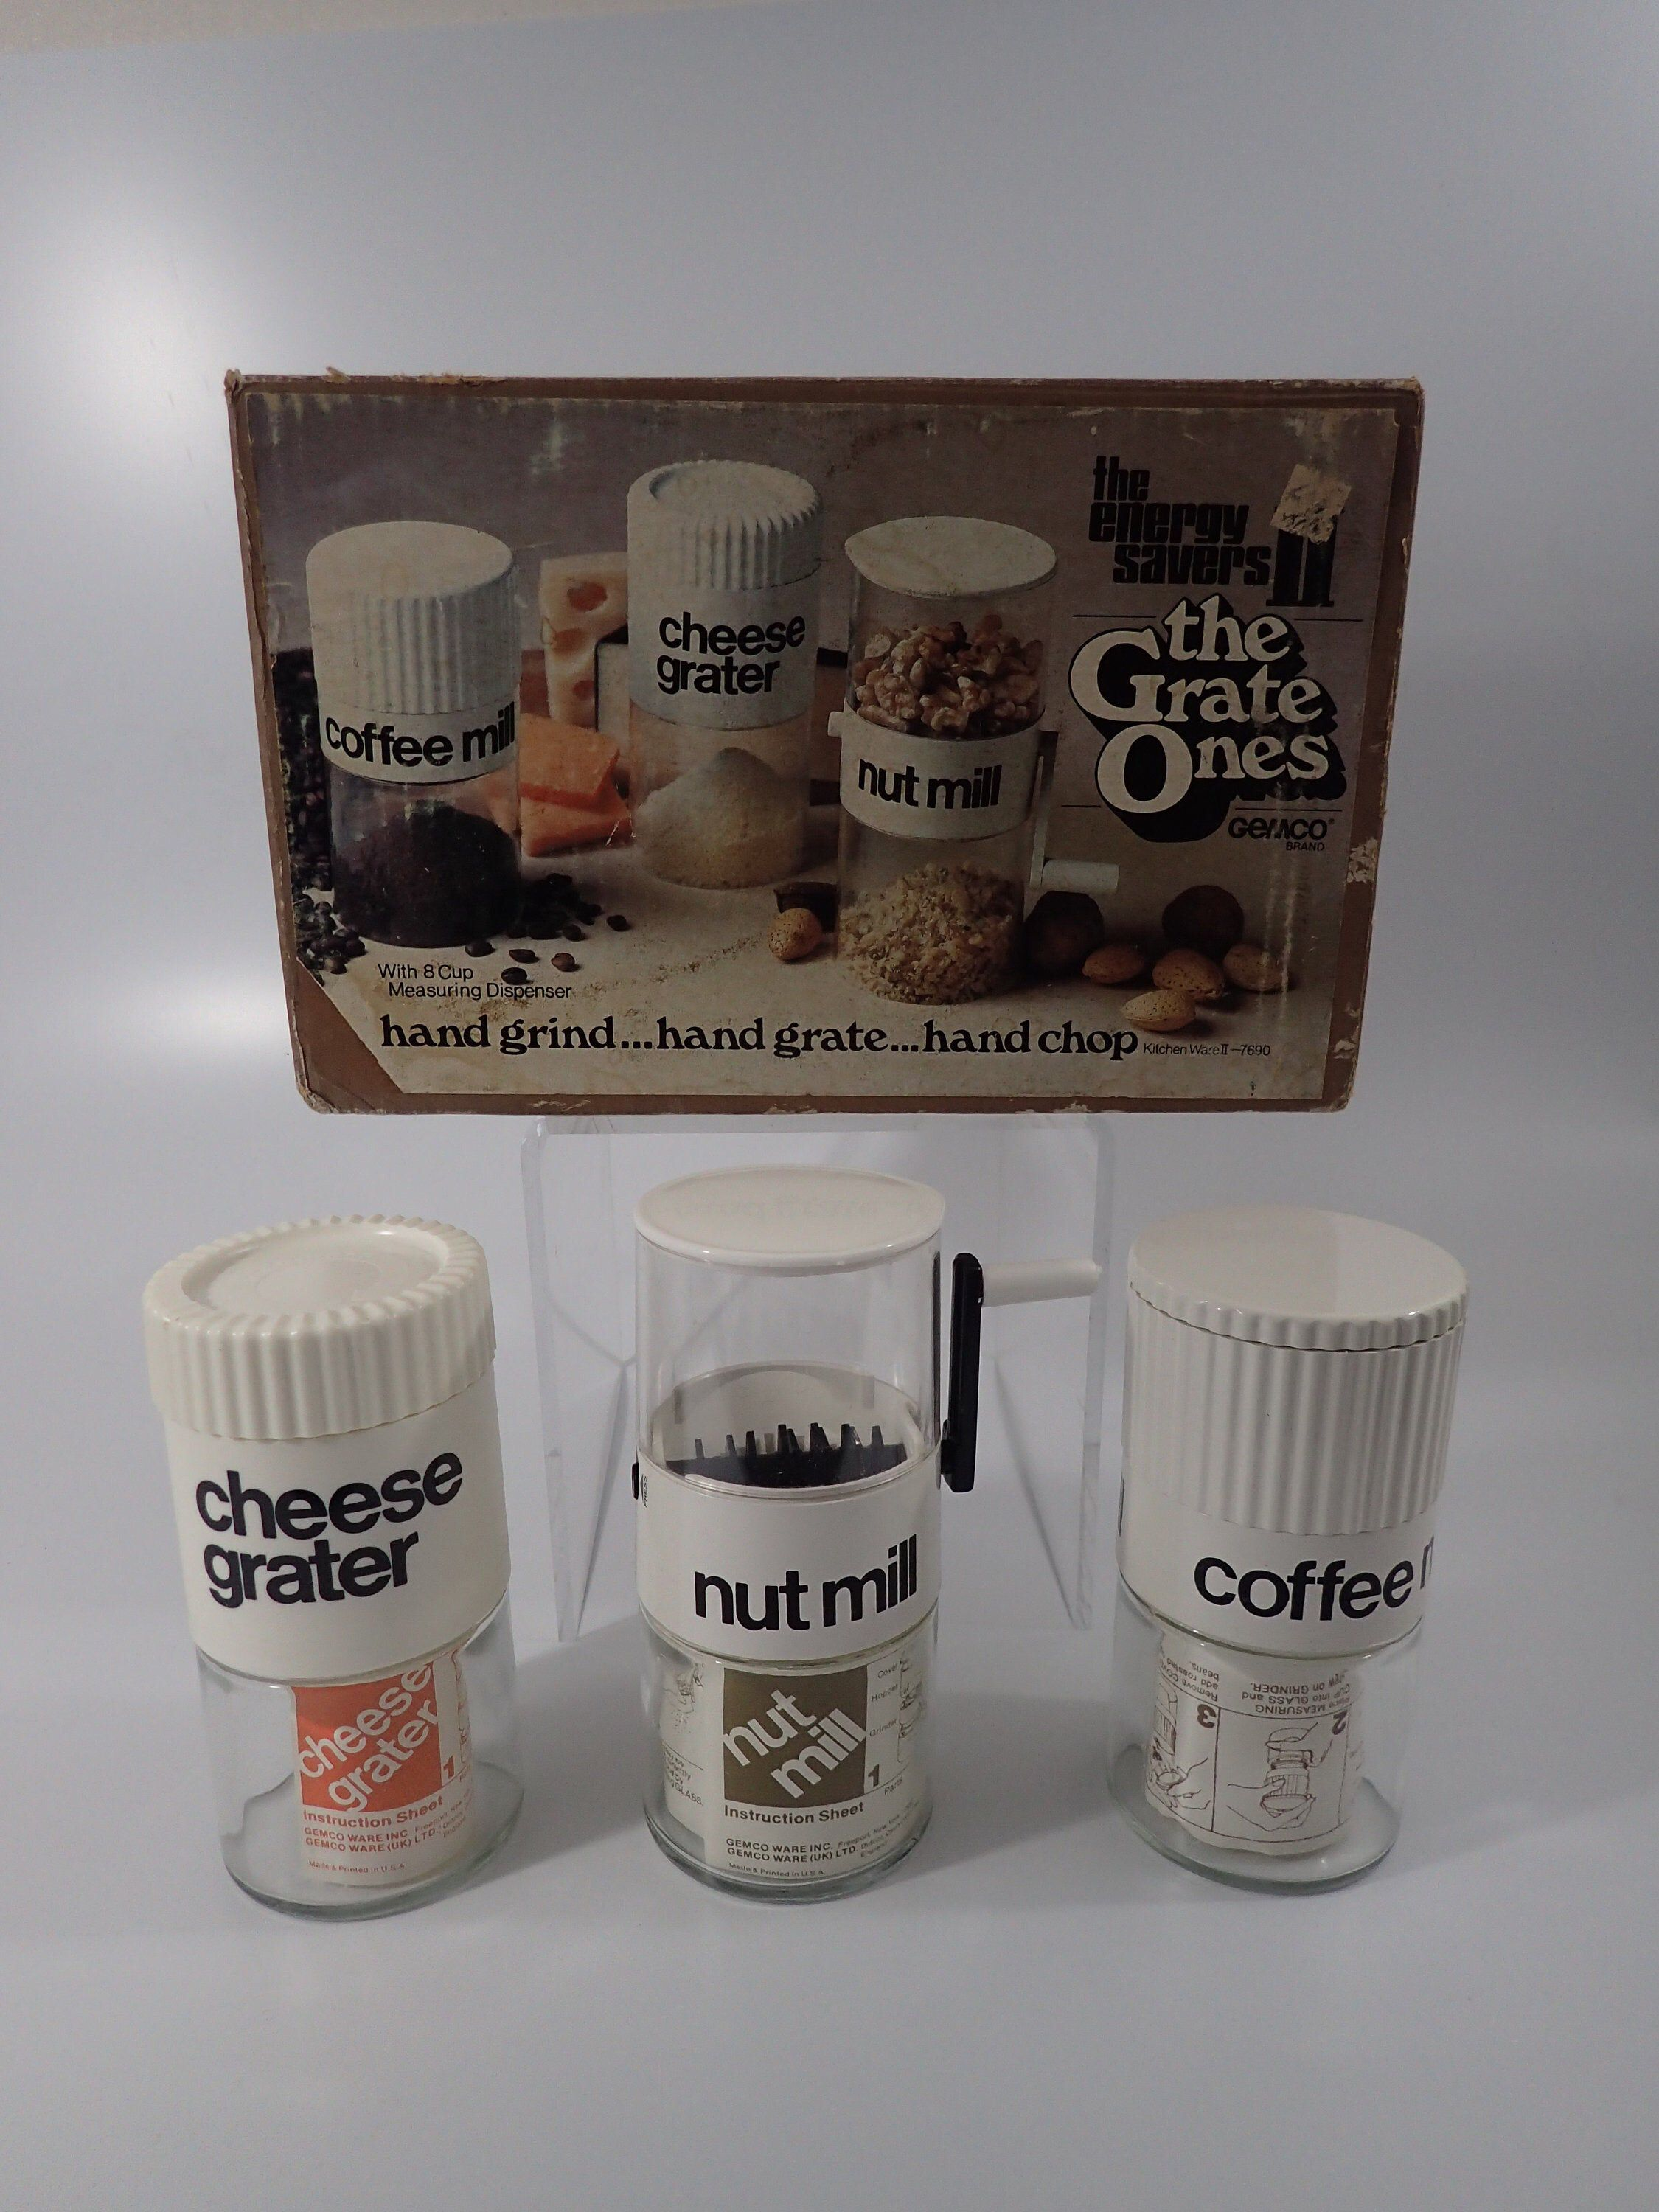 Coffee Mill | Nut Mill | Cheese Grater | Kitchen Ware II | Gemco 3 Pc set | Original Box | Vintage